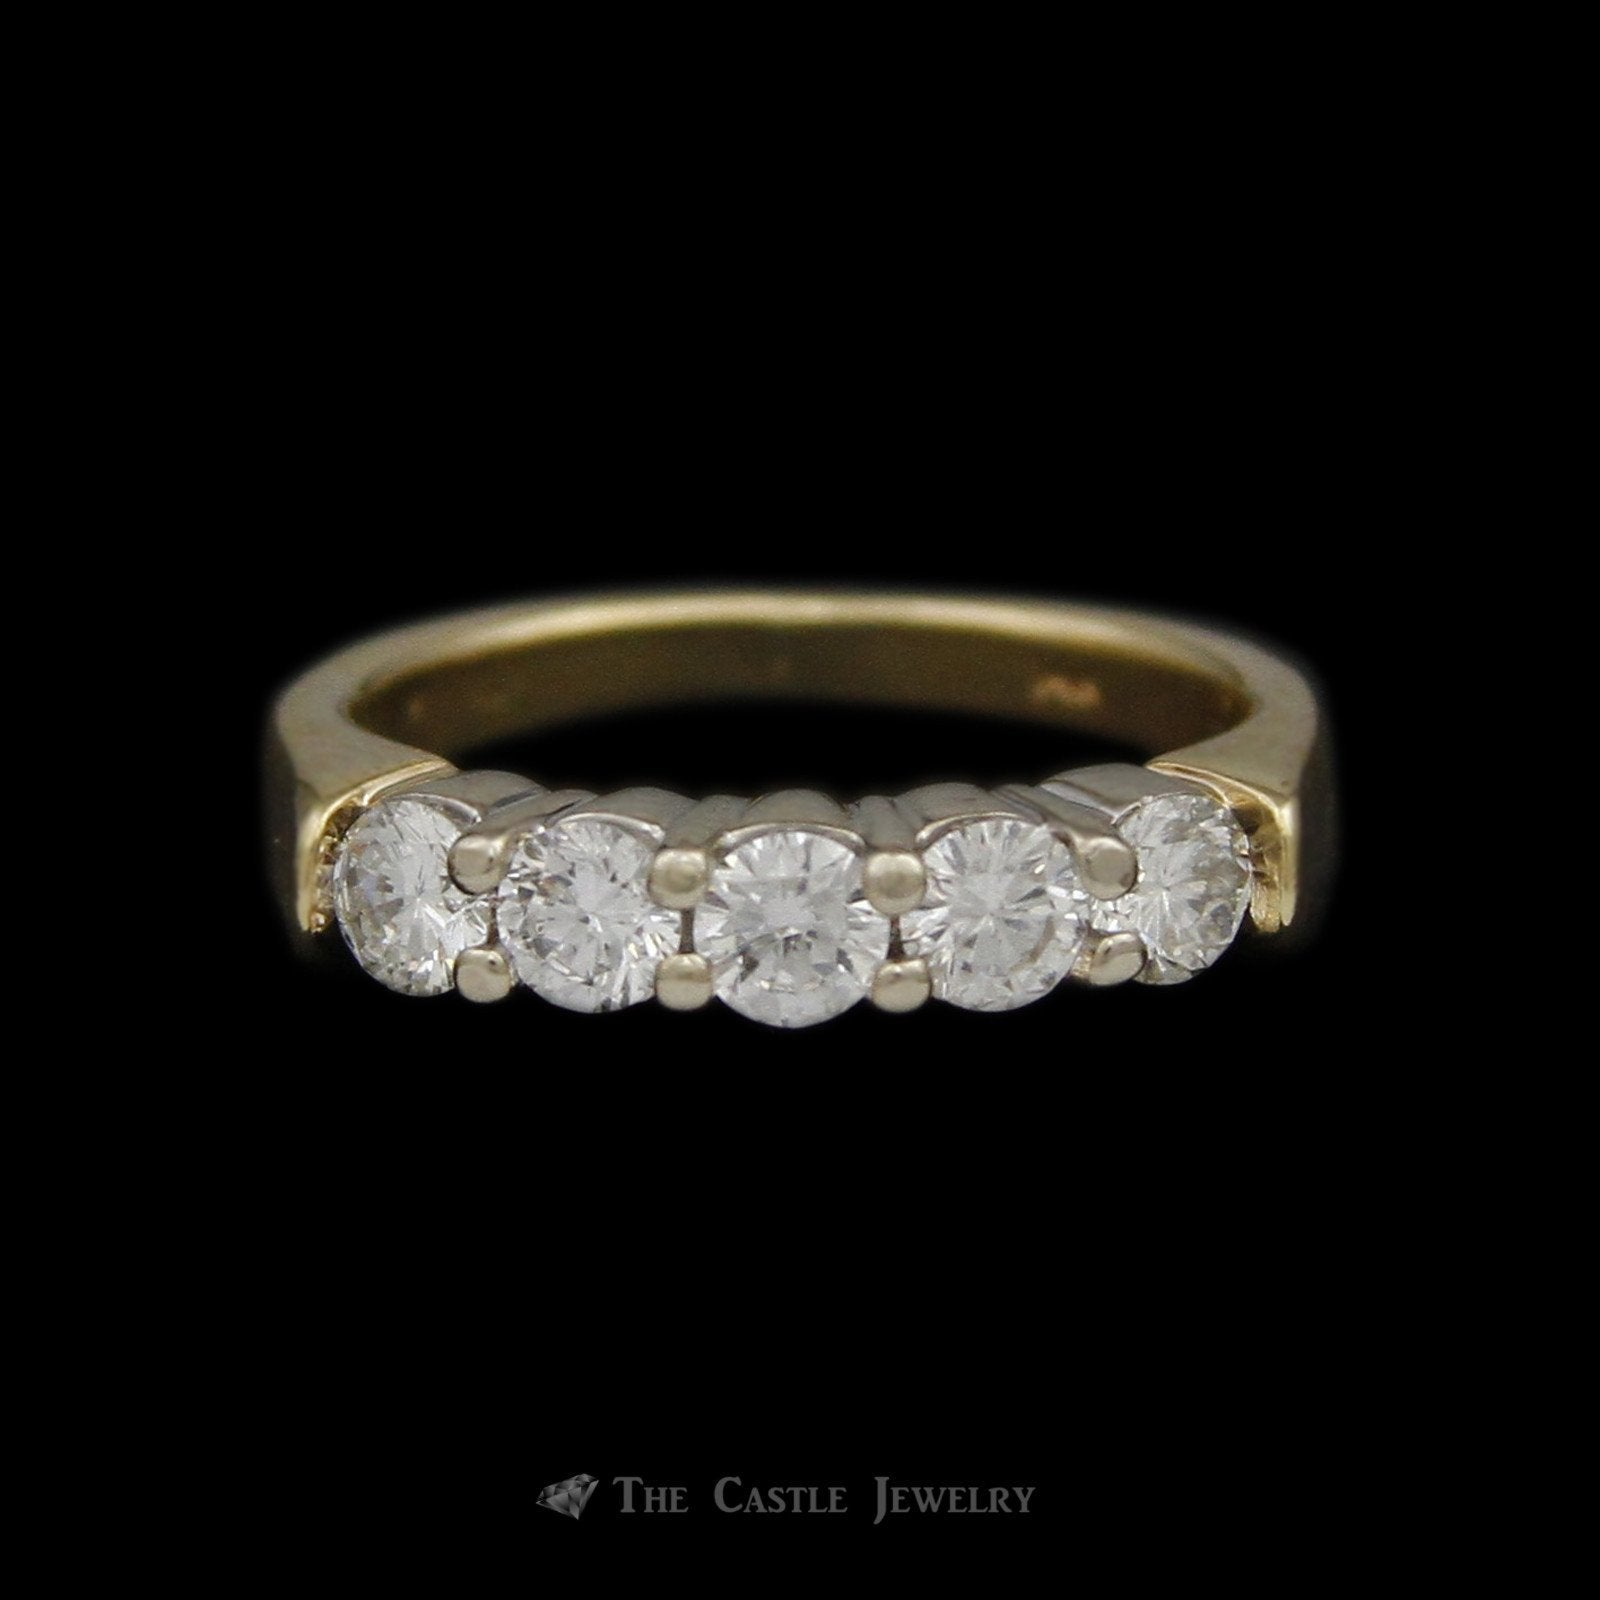 Round Brilliant Cut 5 Diamond ¾ cttw Wedding Anniversary Band in 14K Yellow Gold